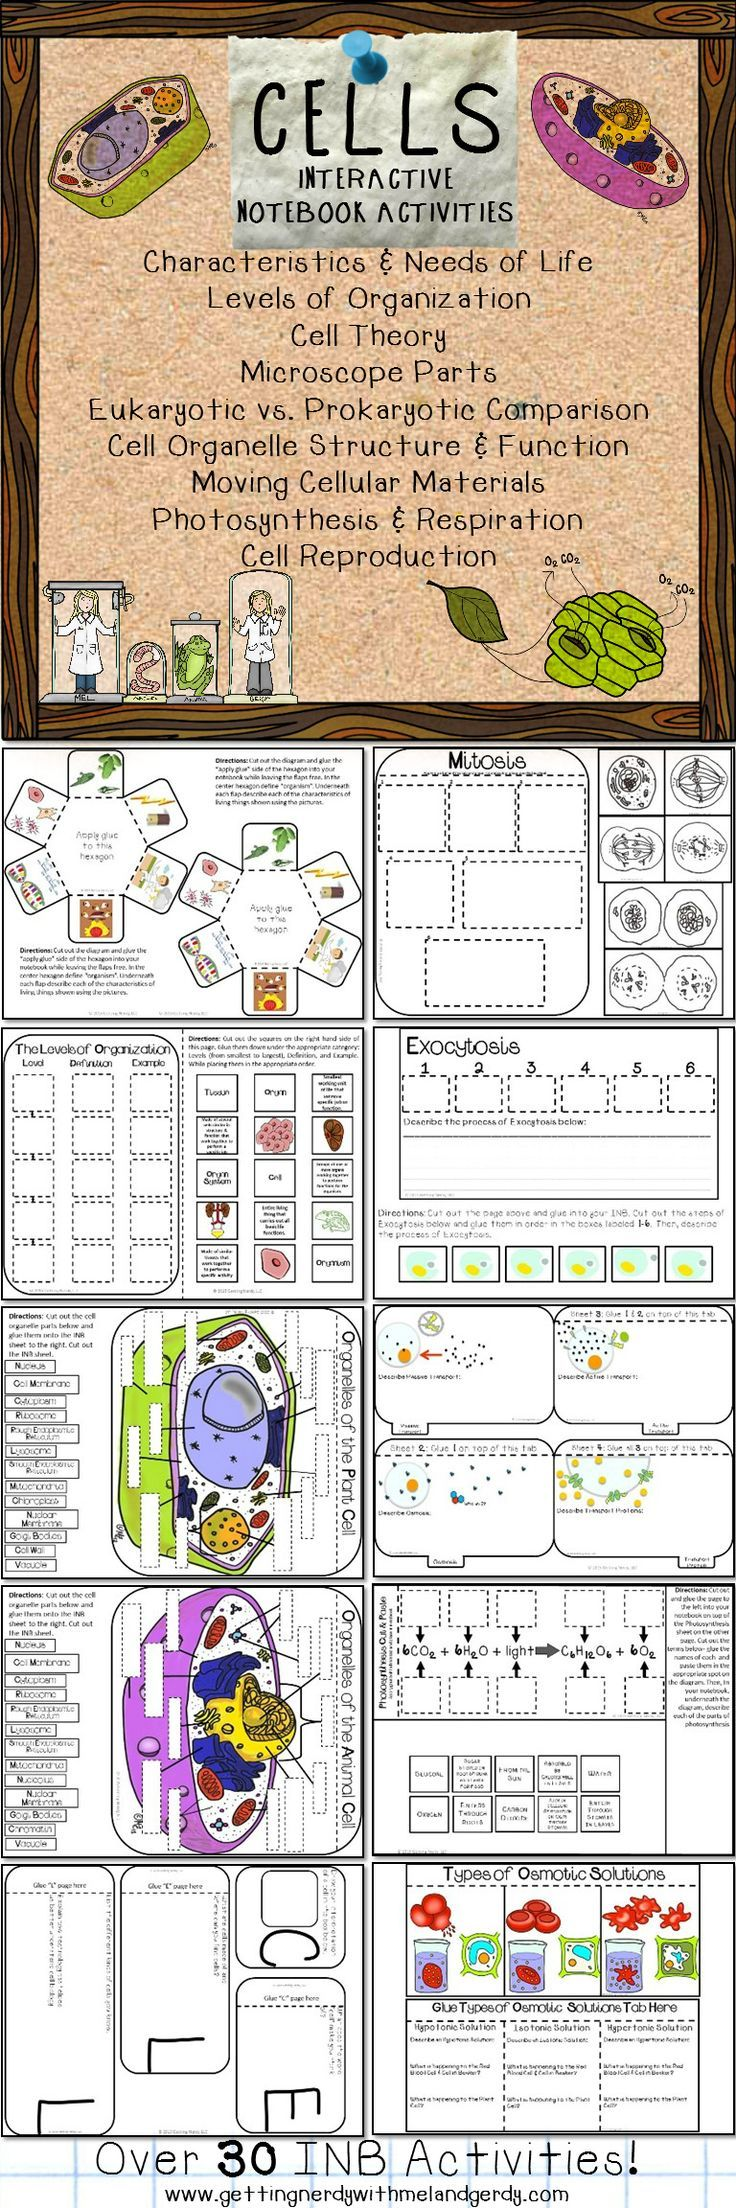 Over 30 interactive science notebook activities for cell organelles and processes.